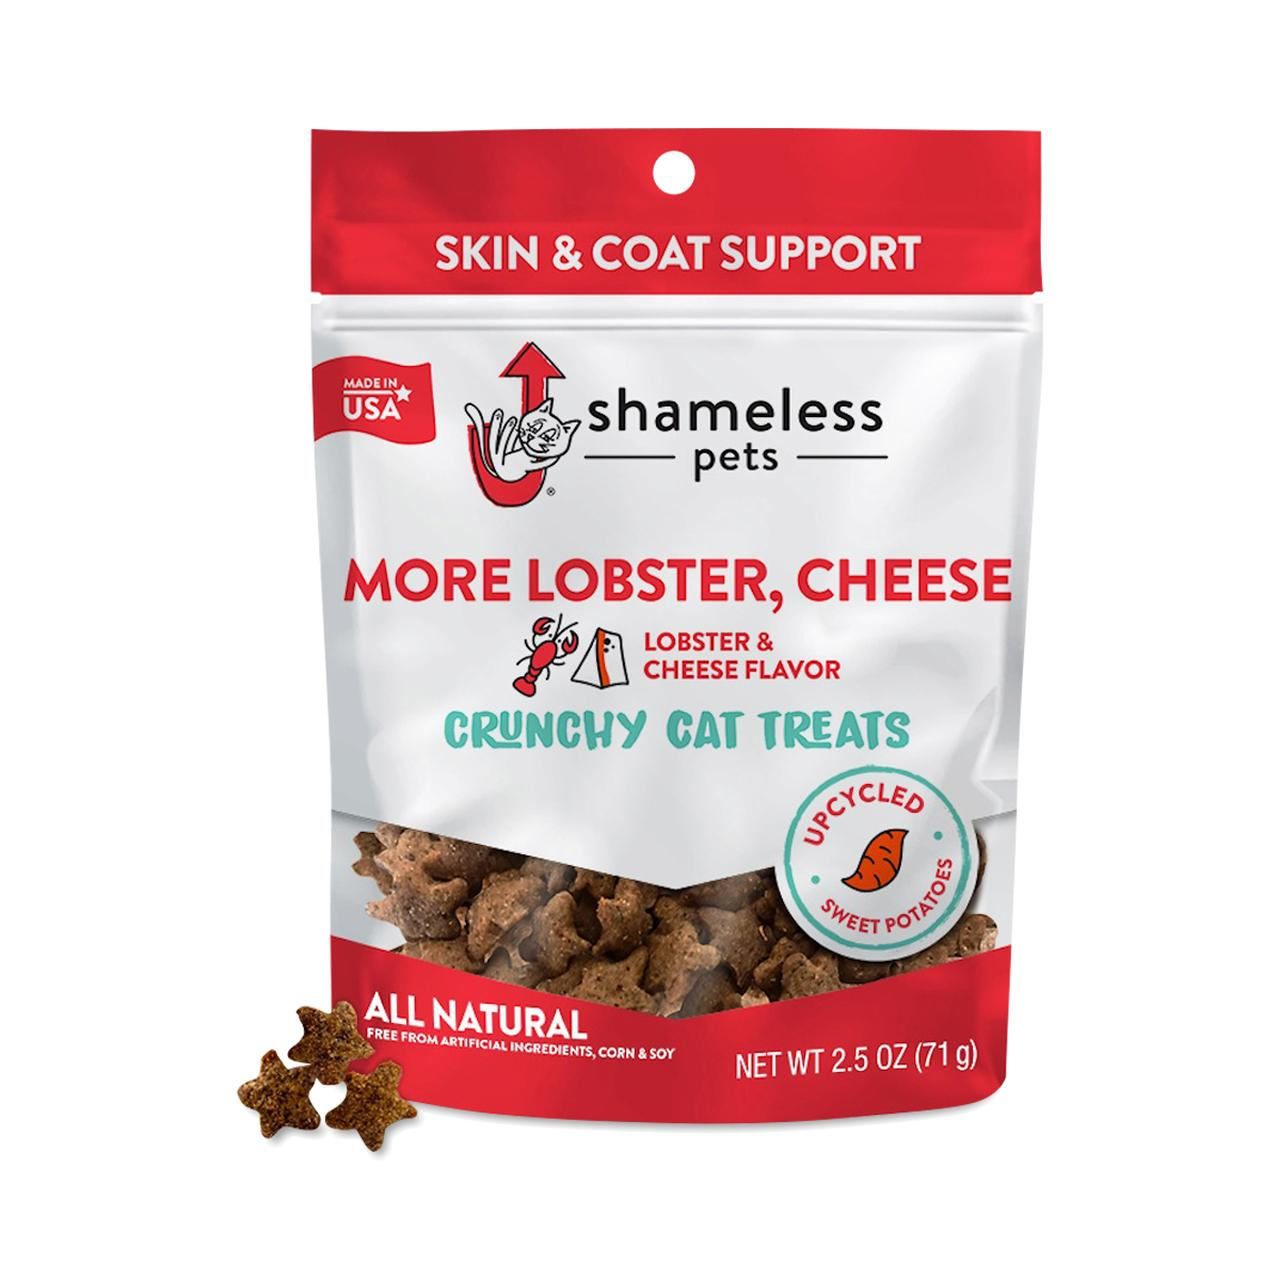 Shameless Pets More Lobster, Cheese Crunchy Cat Treats, 2.5-oz